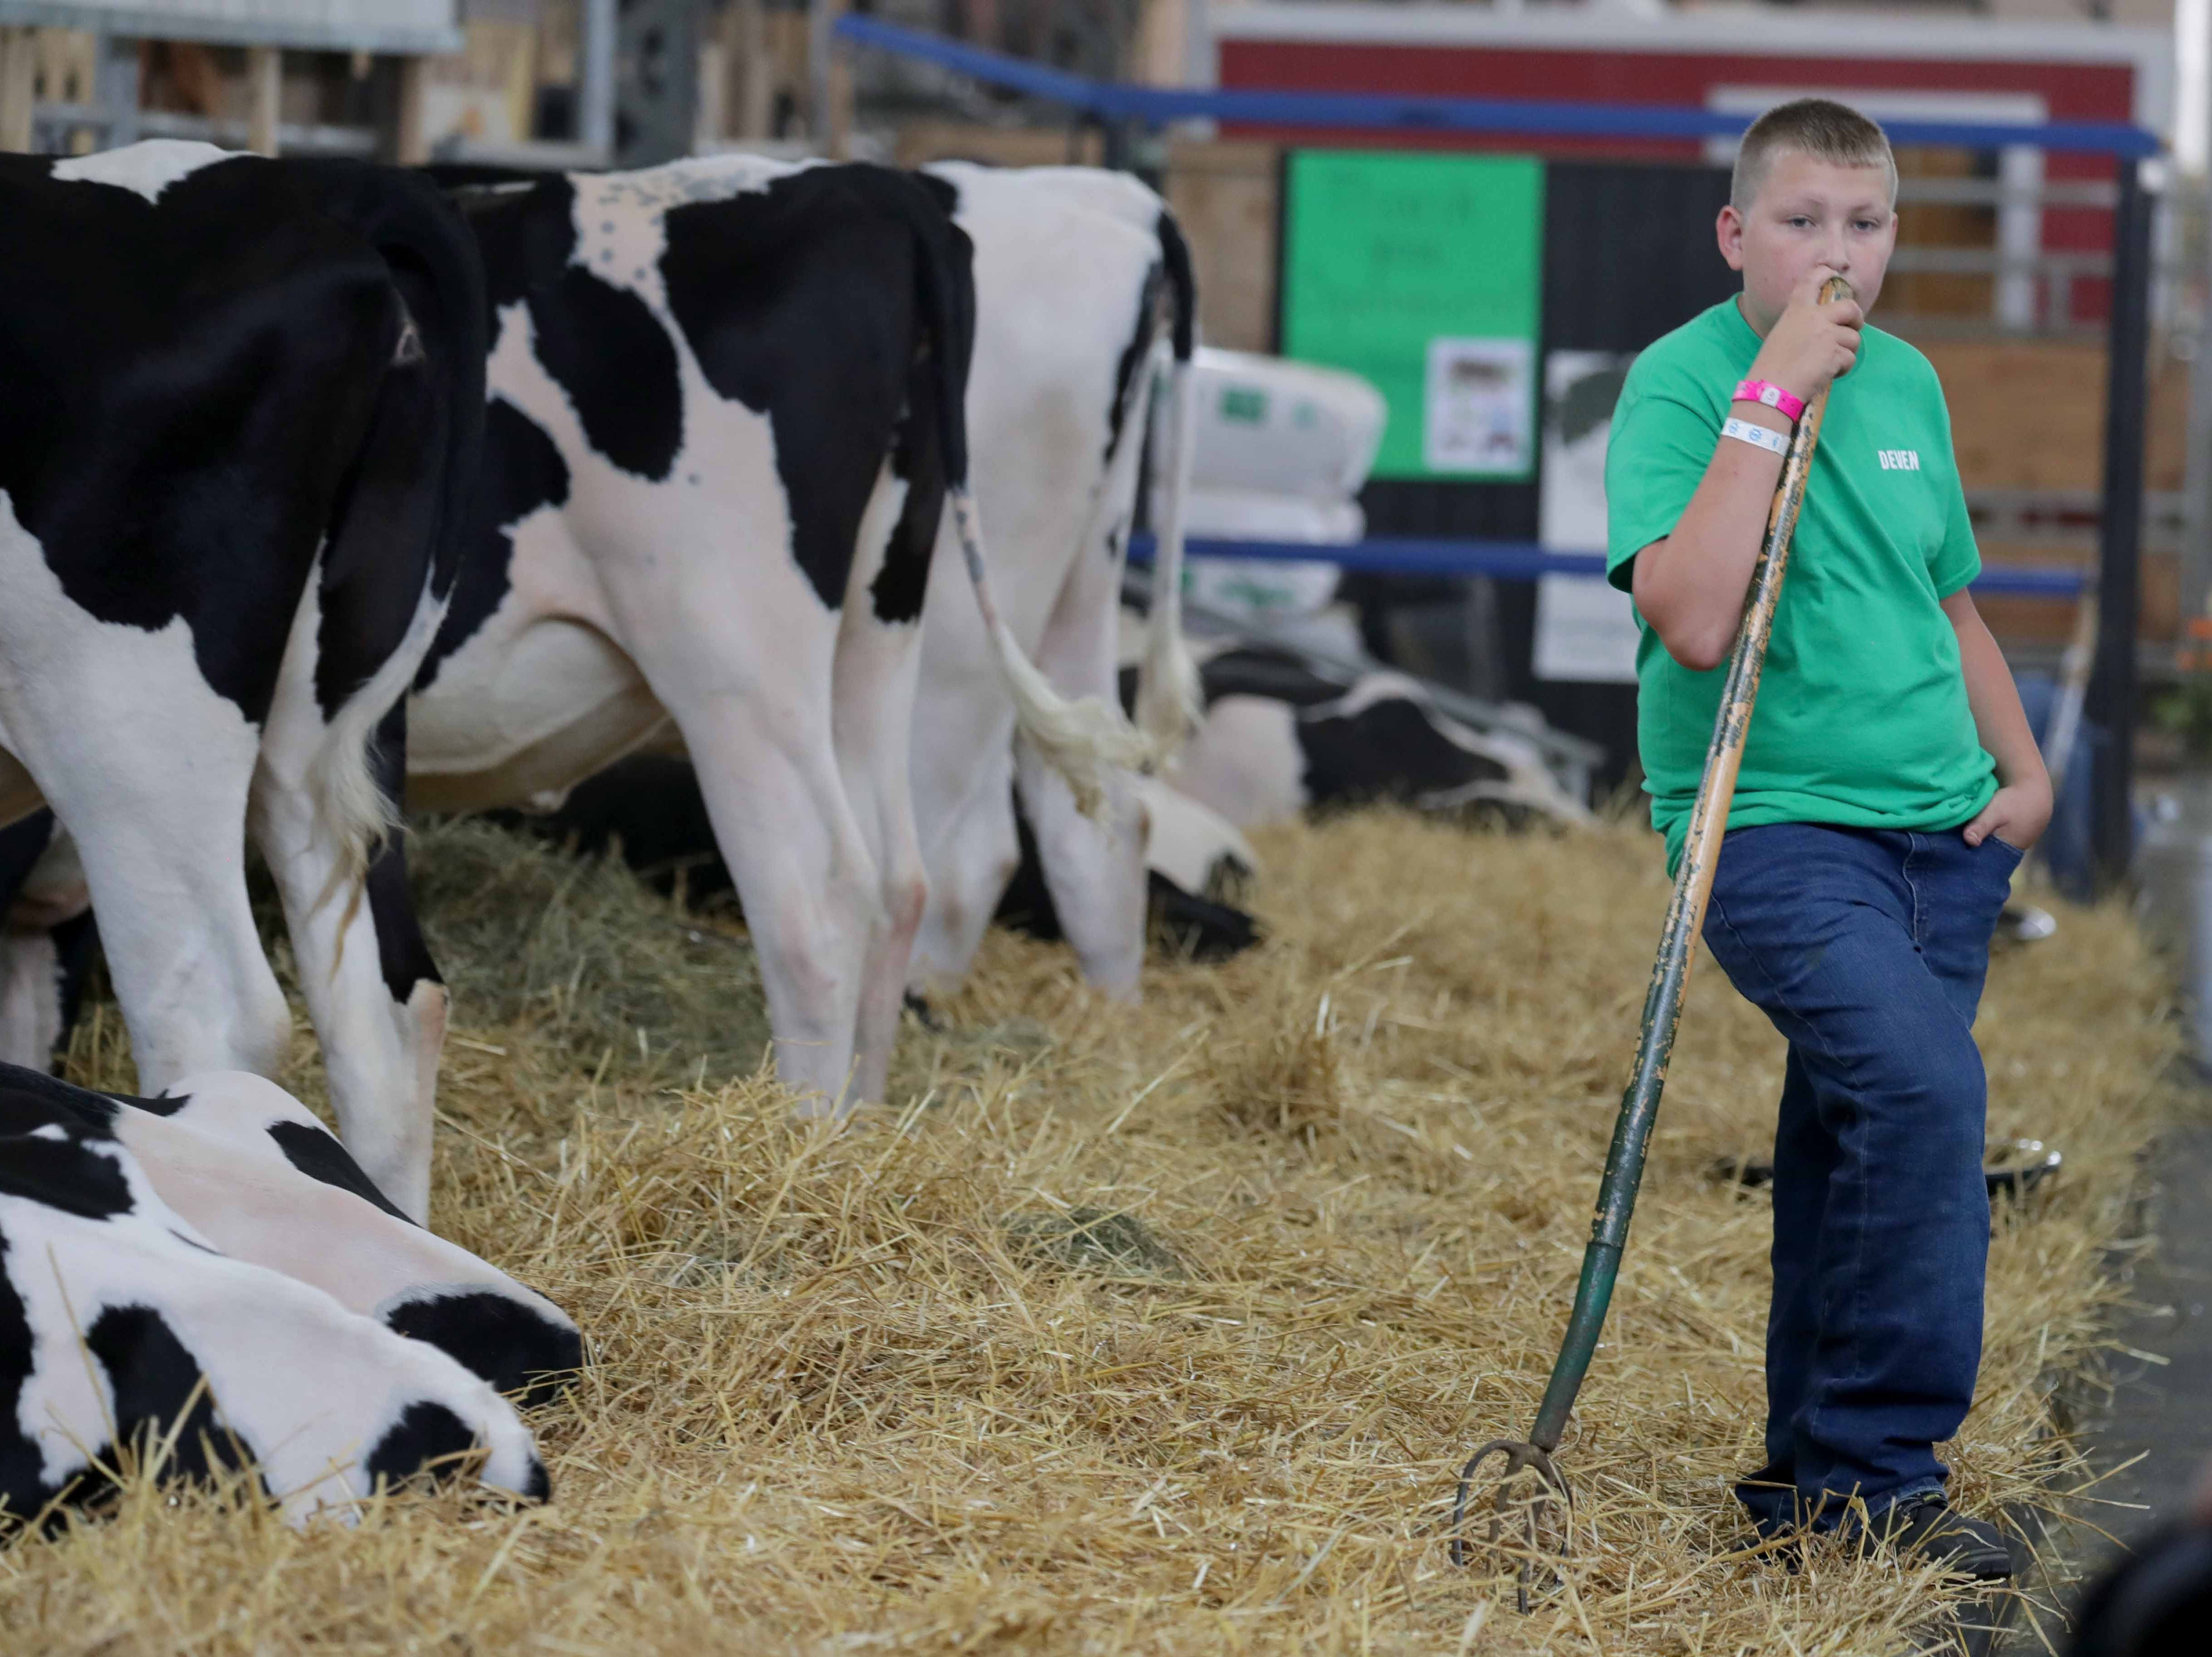 W-ANIMALS - Deven Gilson, 14, of New Glarus, Wis. and a member of the York 4-H club, takes a break from cleaning up a cattle pen.  Youth from across the area from various 4-H groups and agriculture organizations, descended on the Wisconsin State Fair grounds in West Allis to ready their animals for shows. The opening of the 167th Wisconsin State Fair took place at the Wisconsin State Fair grounds in West Allis on Thursday, August 2, 2018. The fair runs through Sunday, August 12  -  Photo by Mike De Sisti / Milwaukee Journal Sentinel